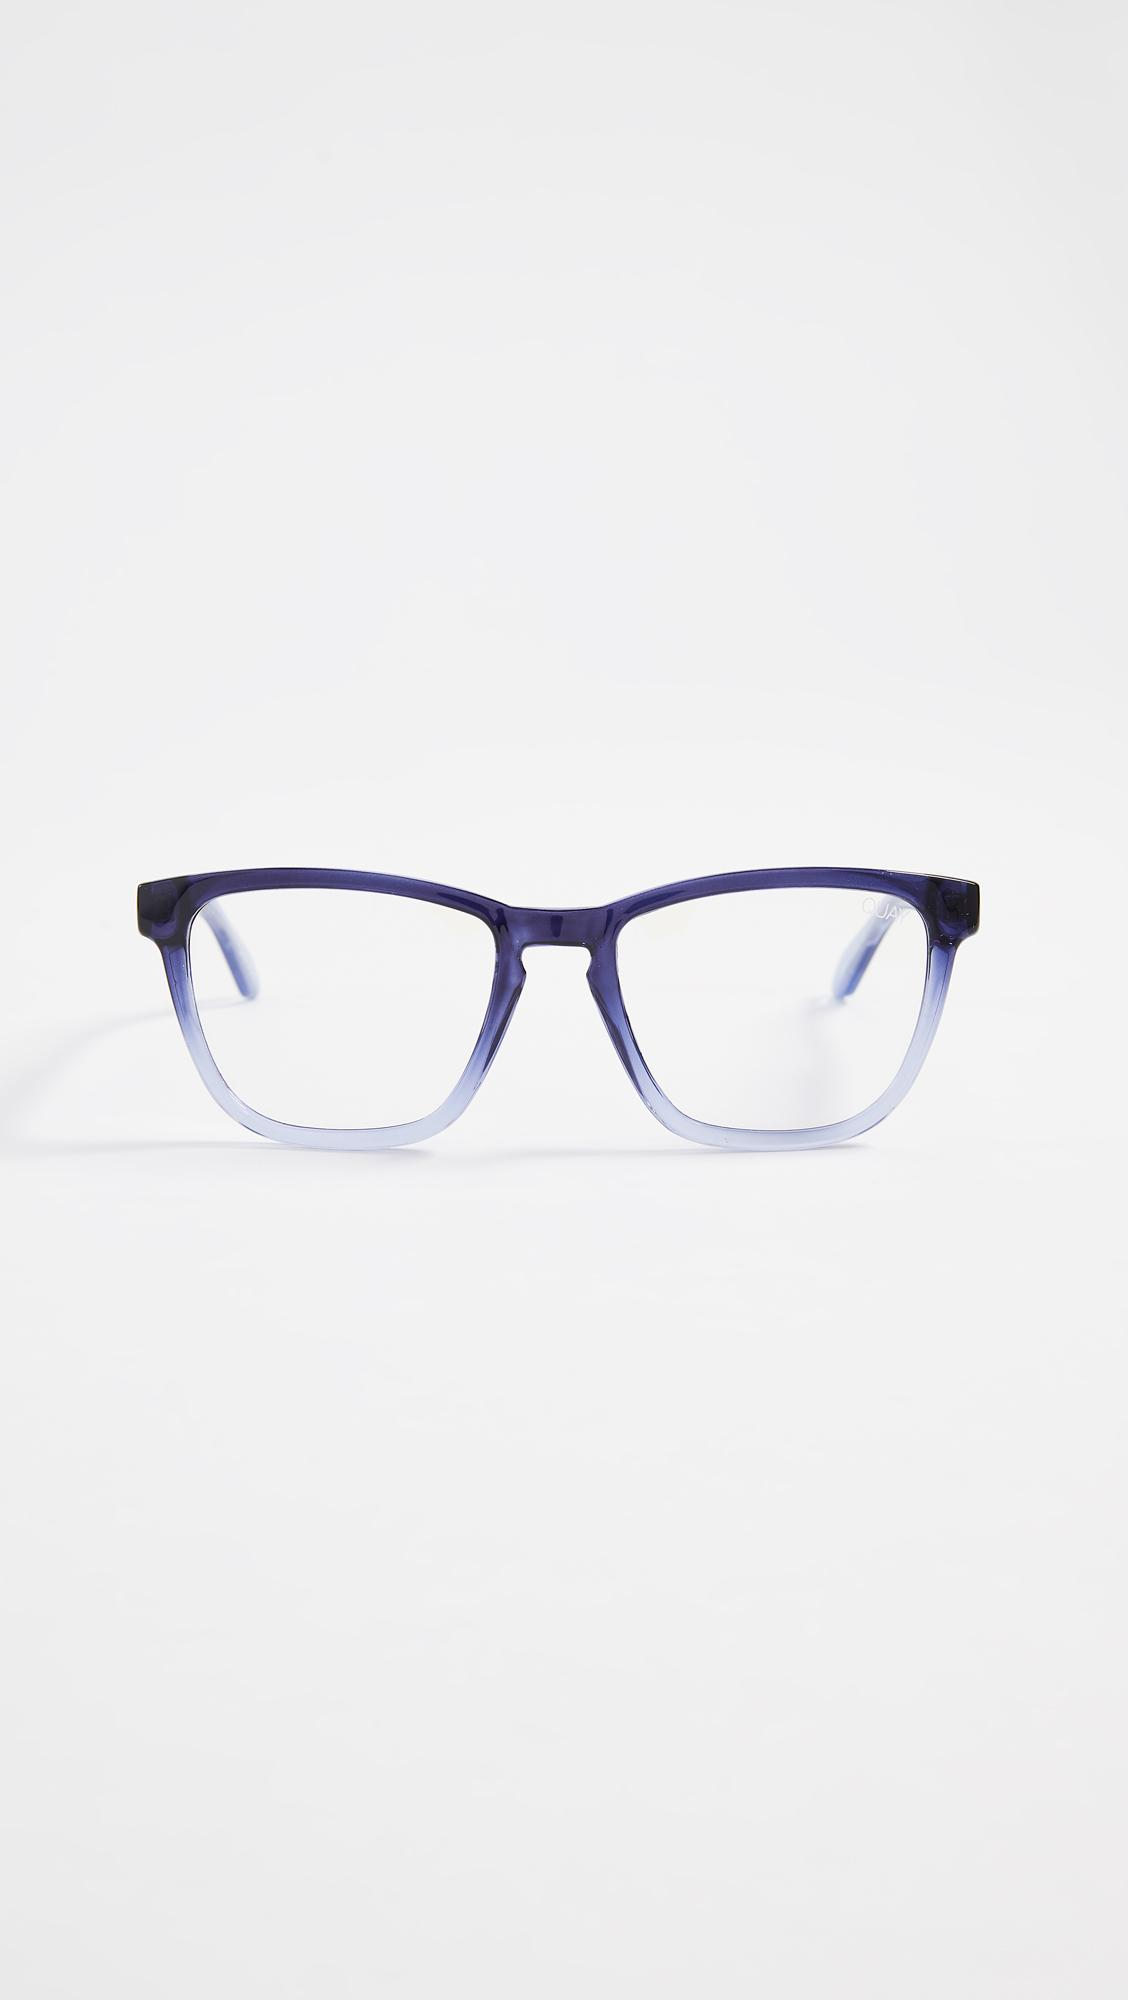 8044b1a115 Quay Hardwire Glasses in Blue - Lyst